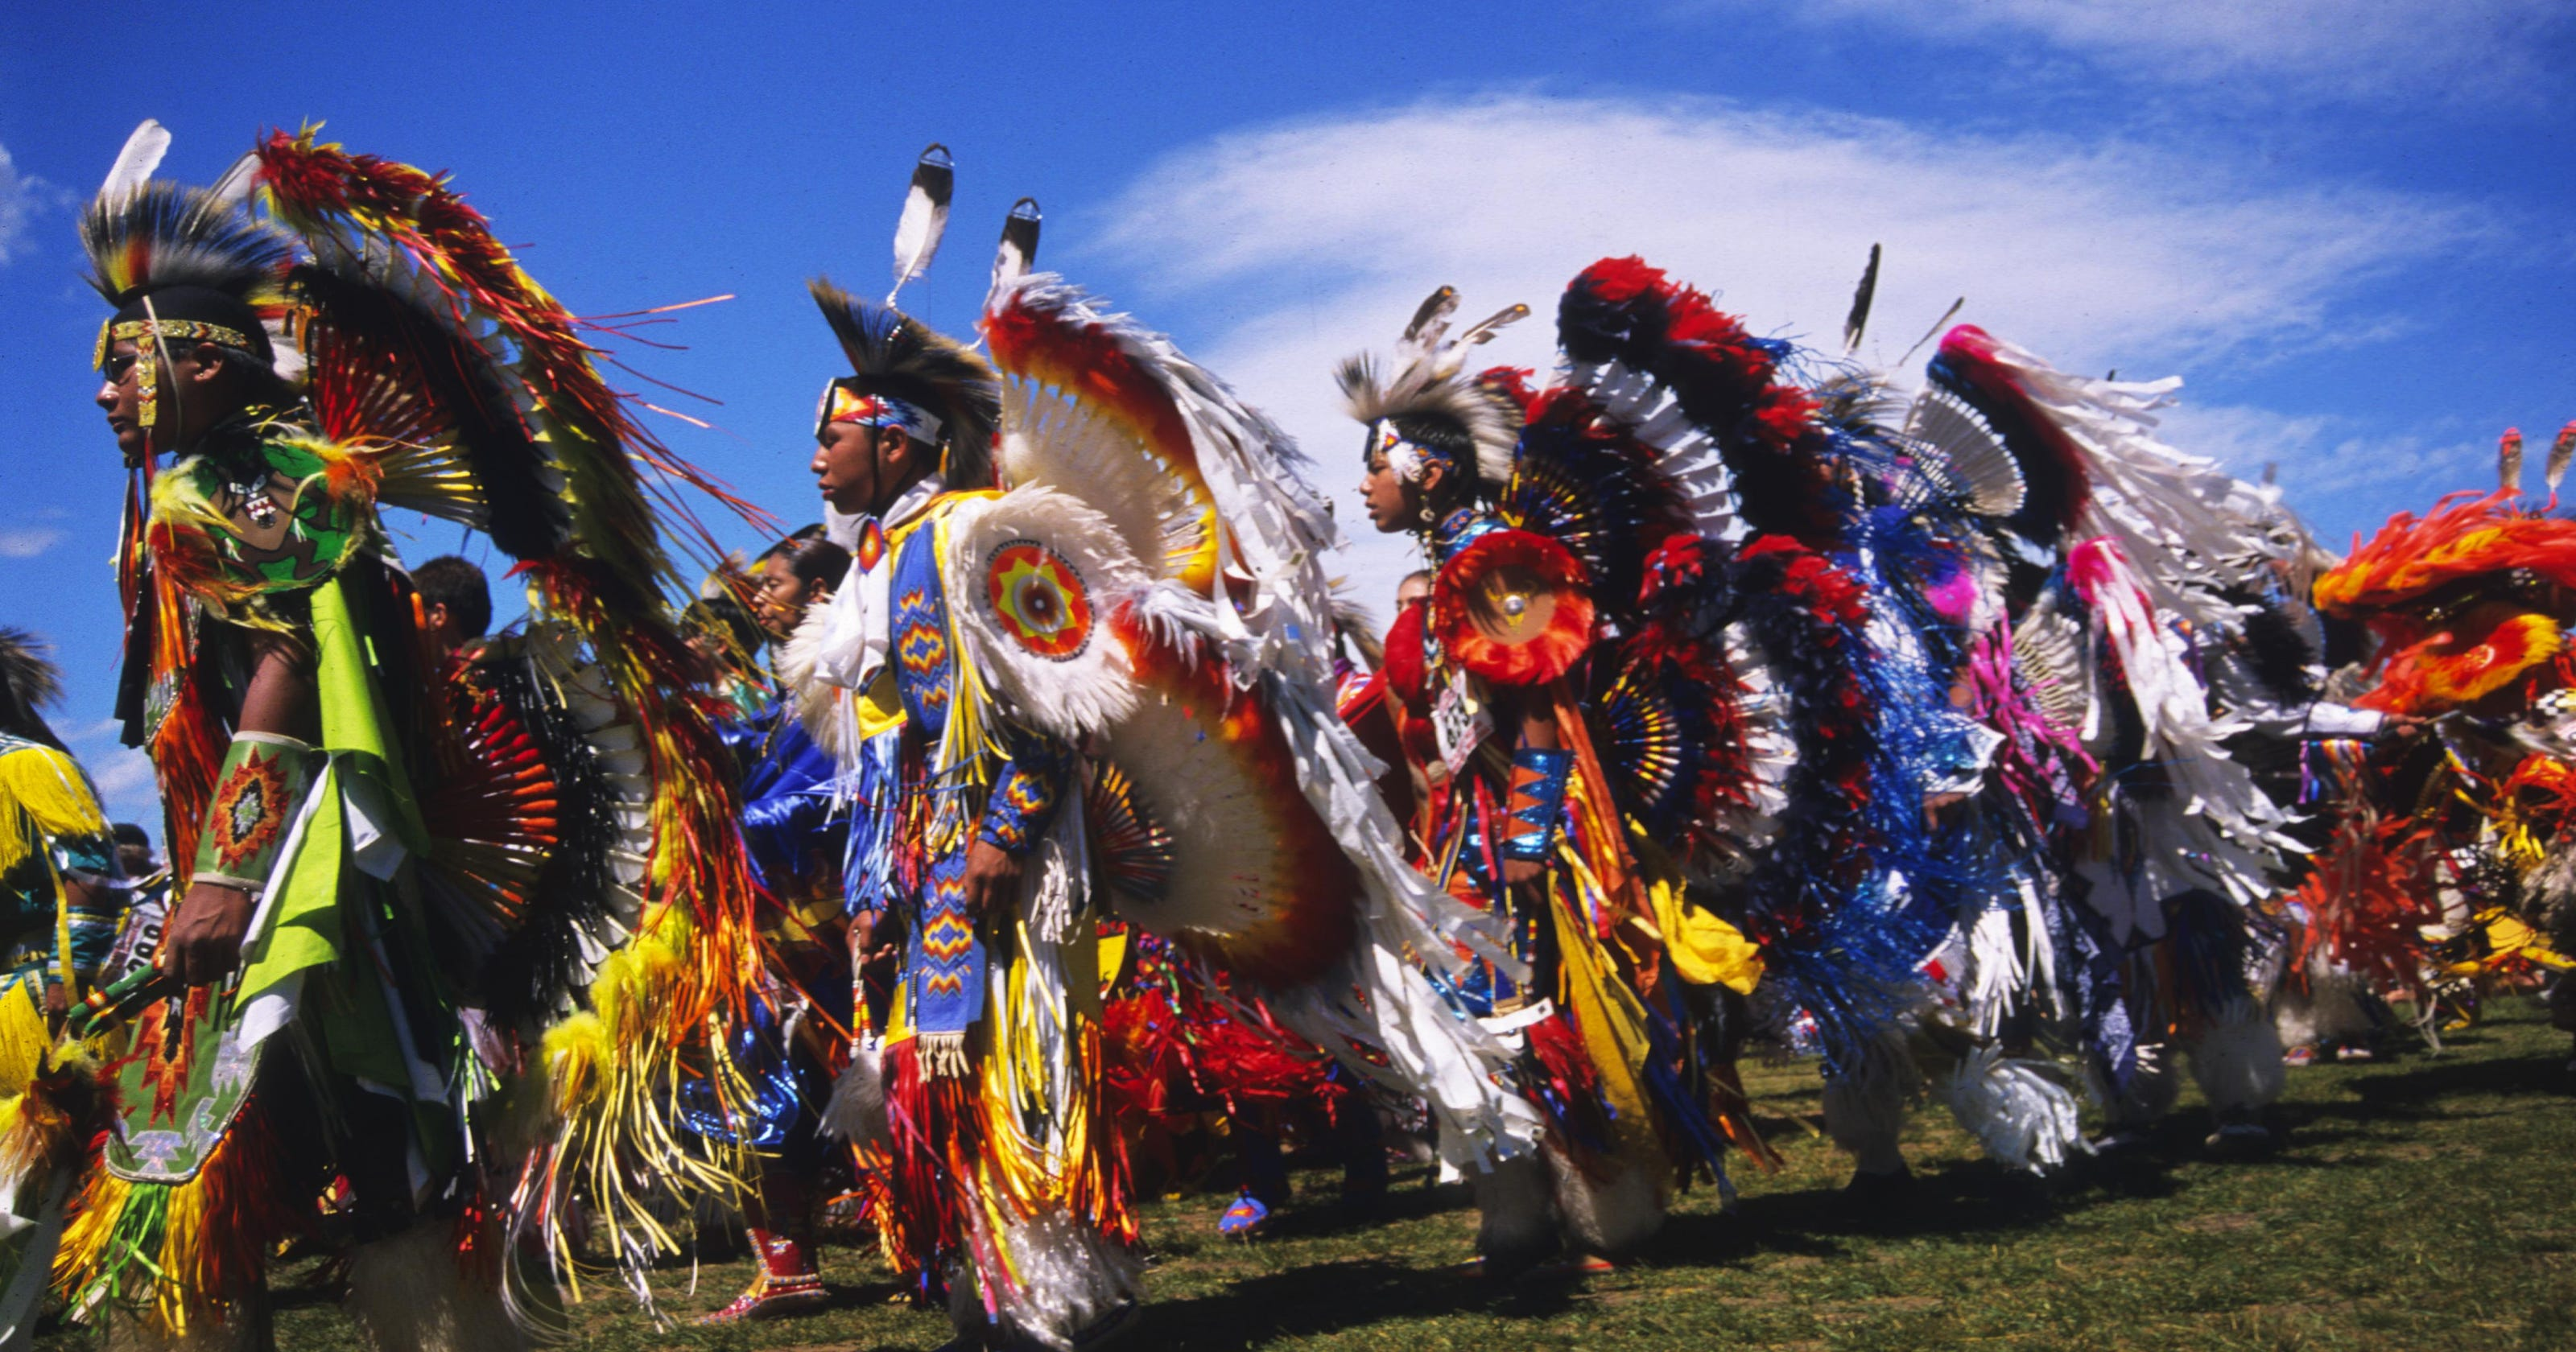 The Blackfeet Nation's prodigious history